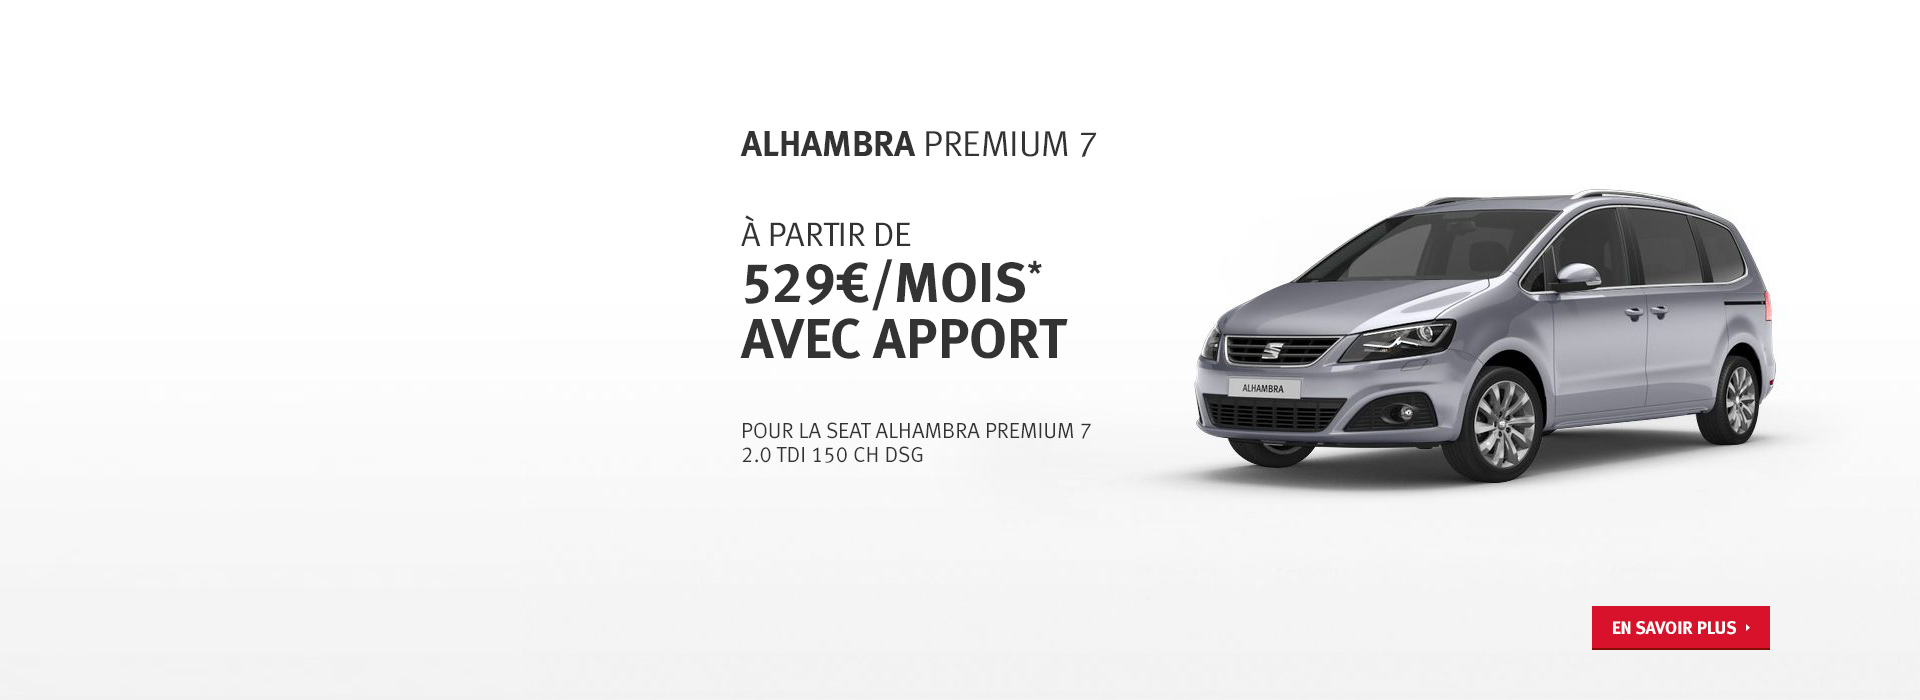 Offre Alhambra